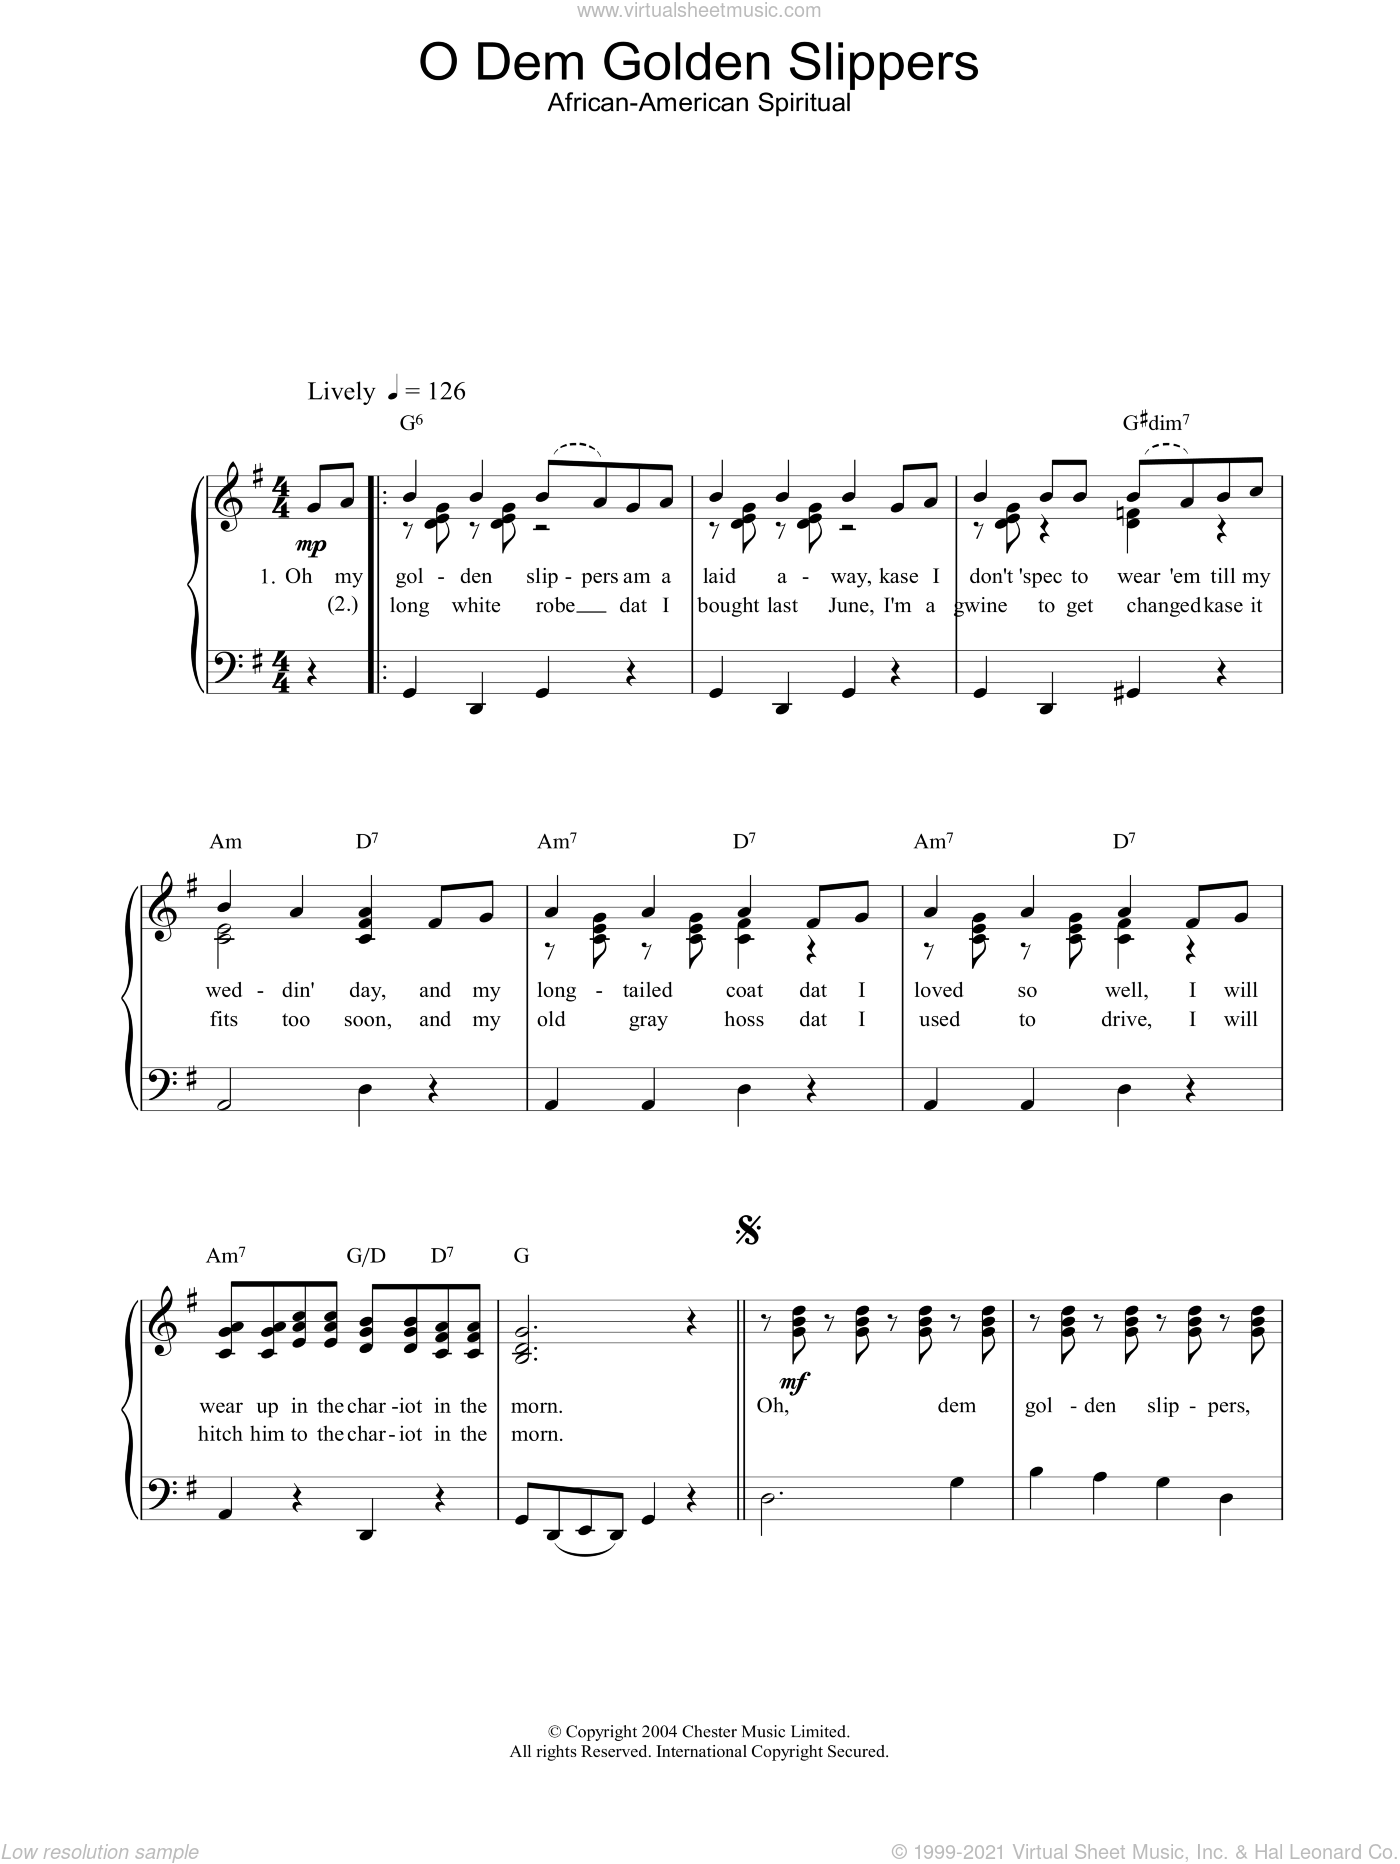 O Dem Golden Slippers sheet music for piano solo, easy skill level